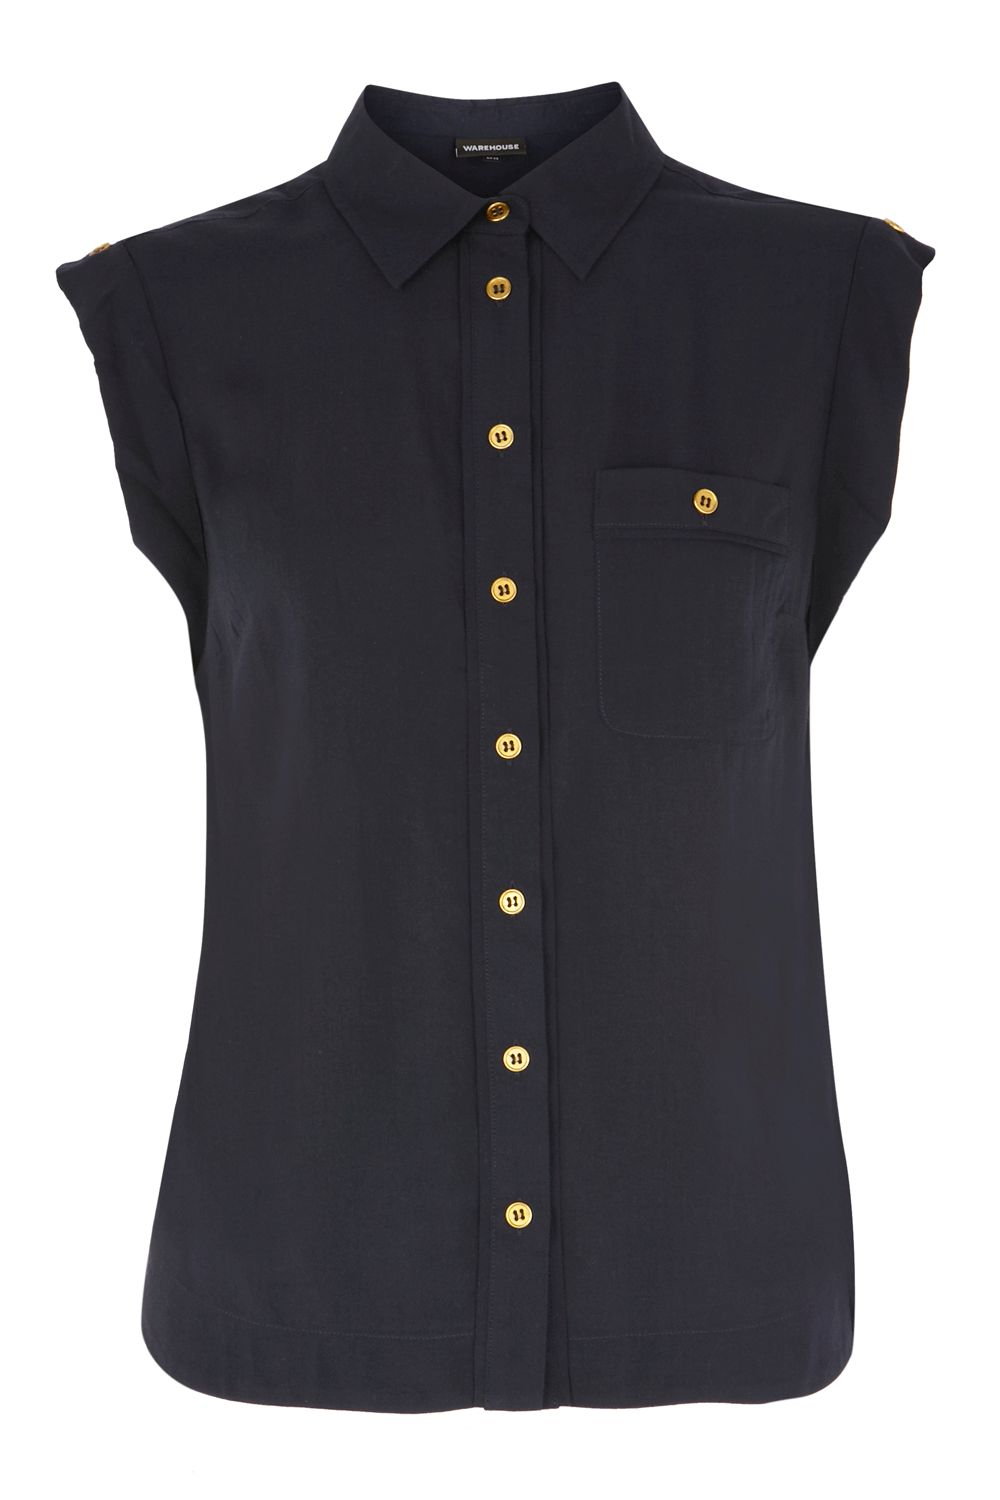 Warehouse Womens Warehouse Roll-sleeve blouse, Navy product image